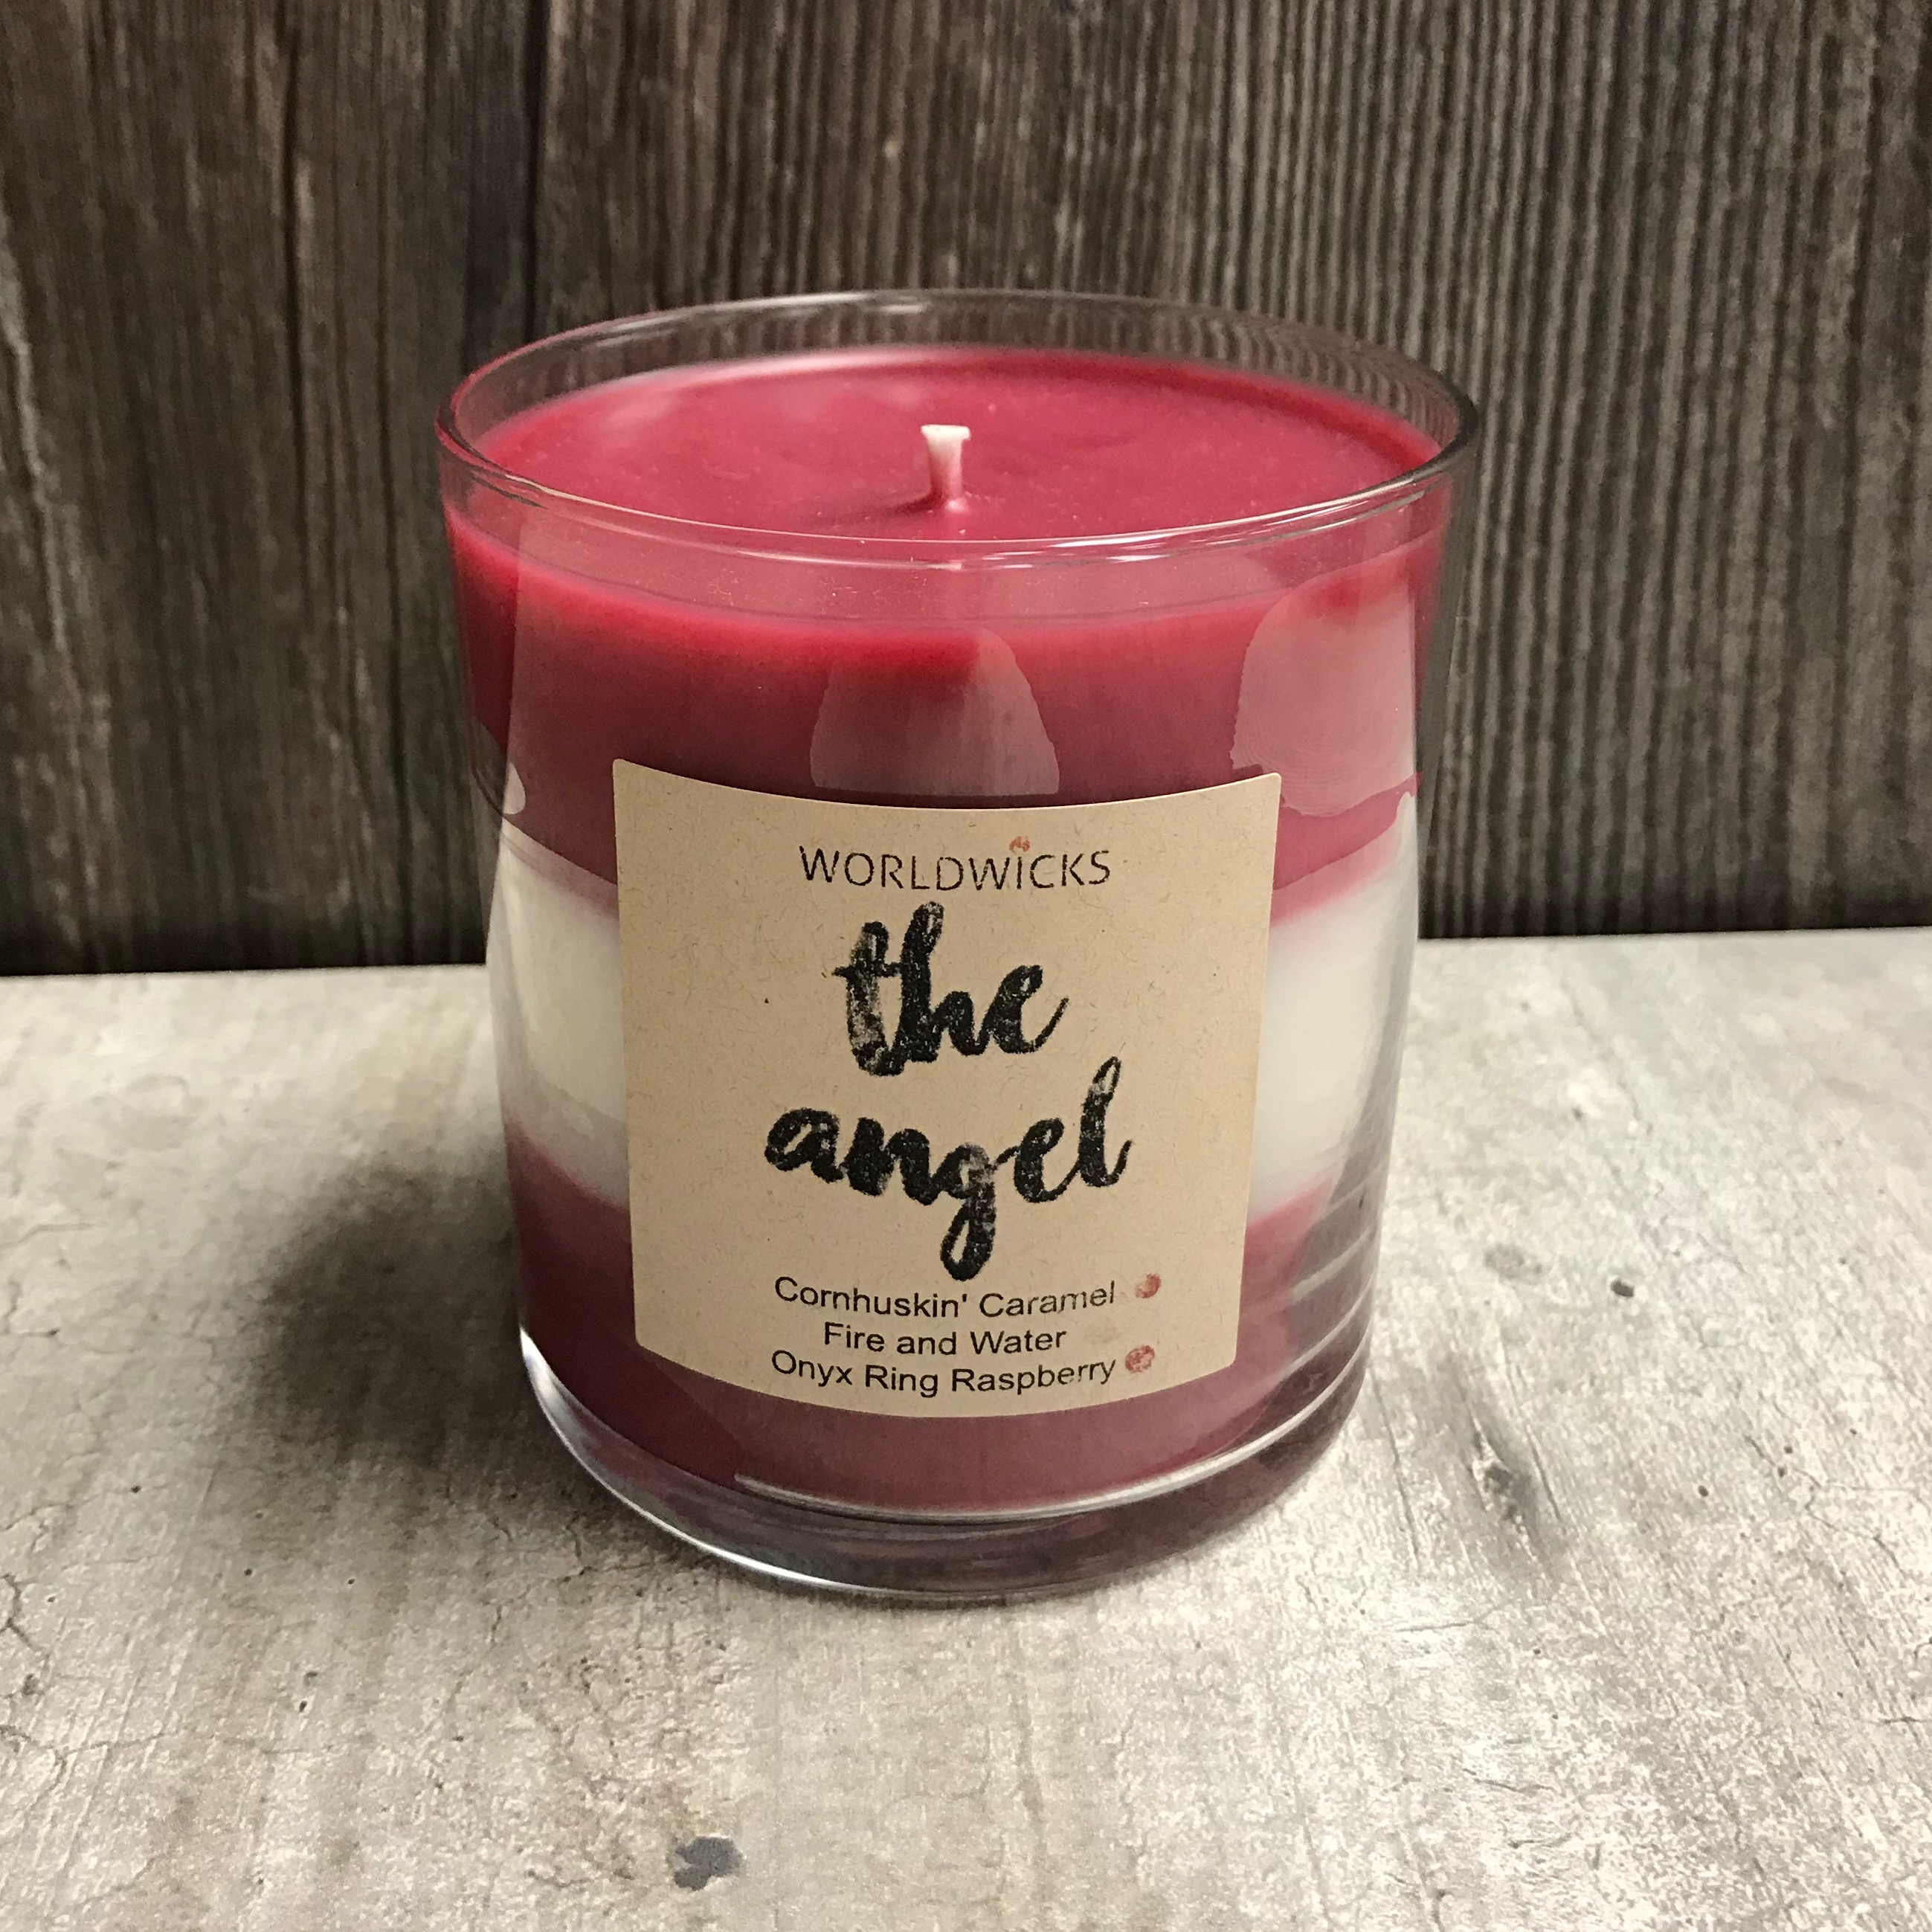 Image for the The Angel Candle product